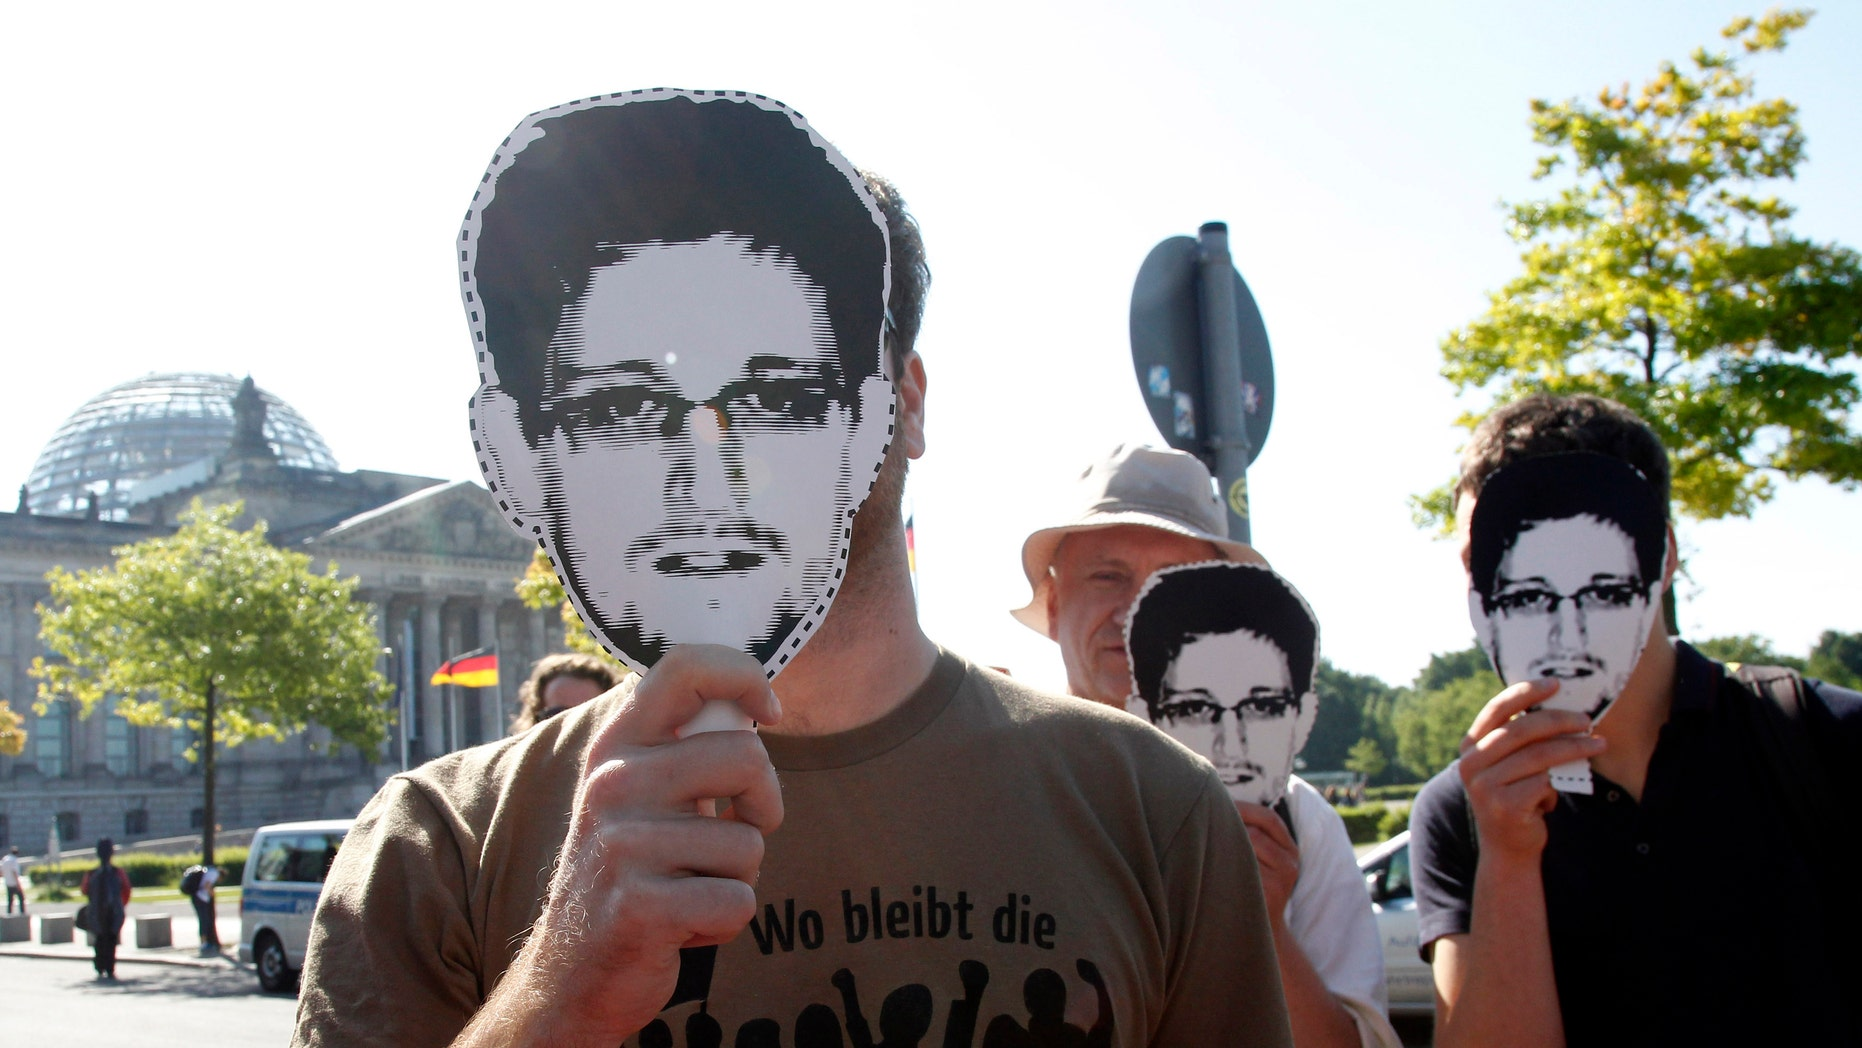 Protesters hold masks depicting former U.S. National Security Agency contractor Edward Snowden during a demonstration in Berlin May 22, 2014.